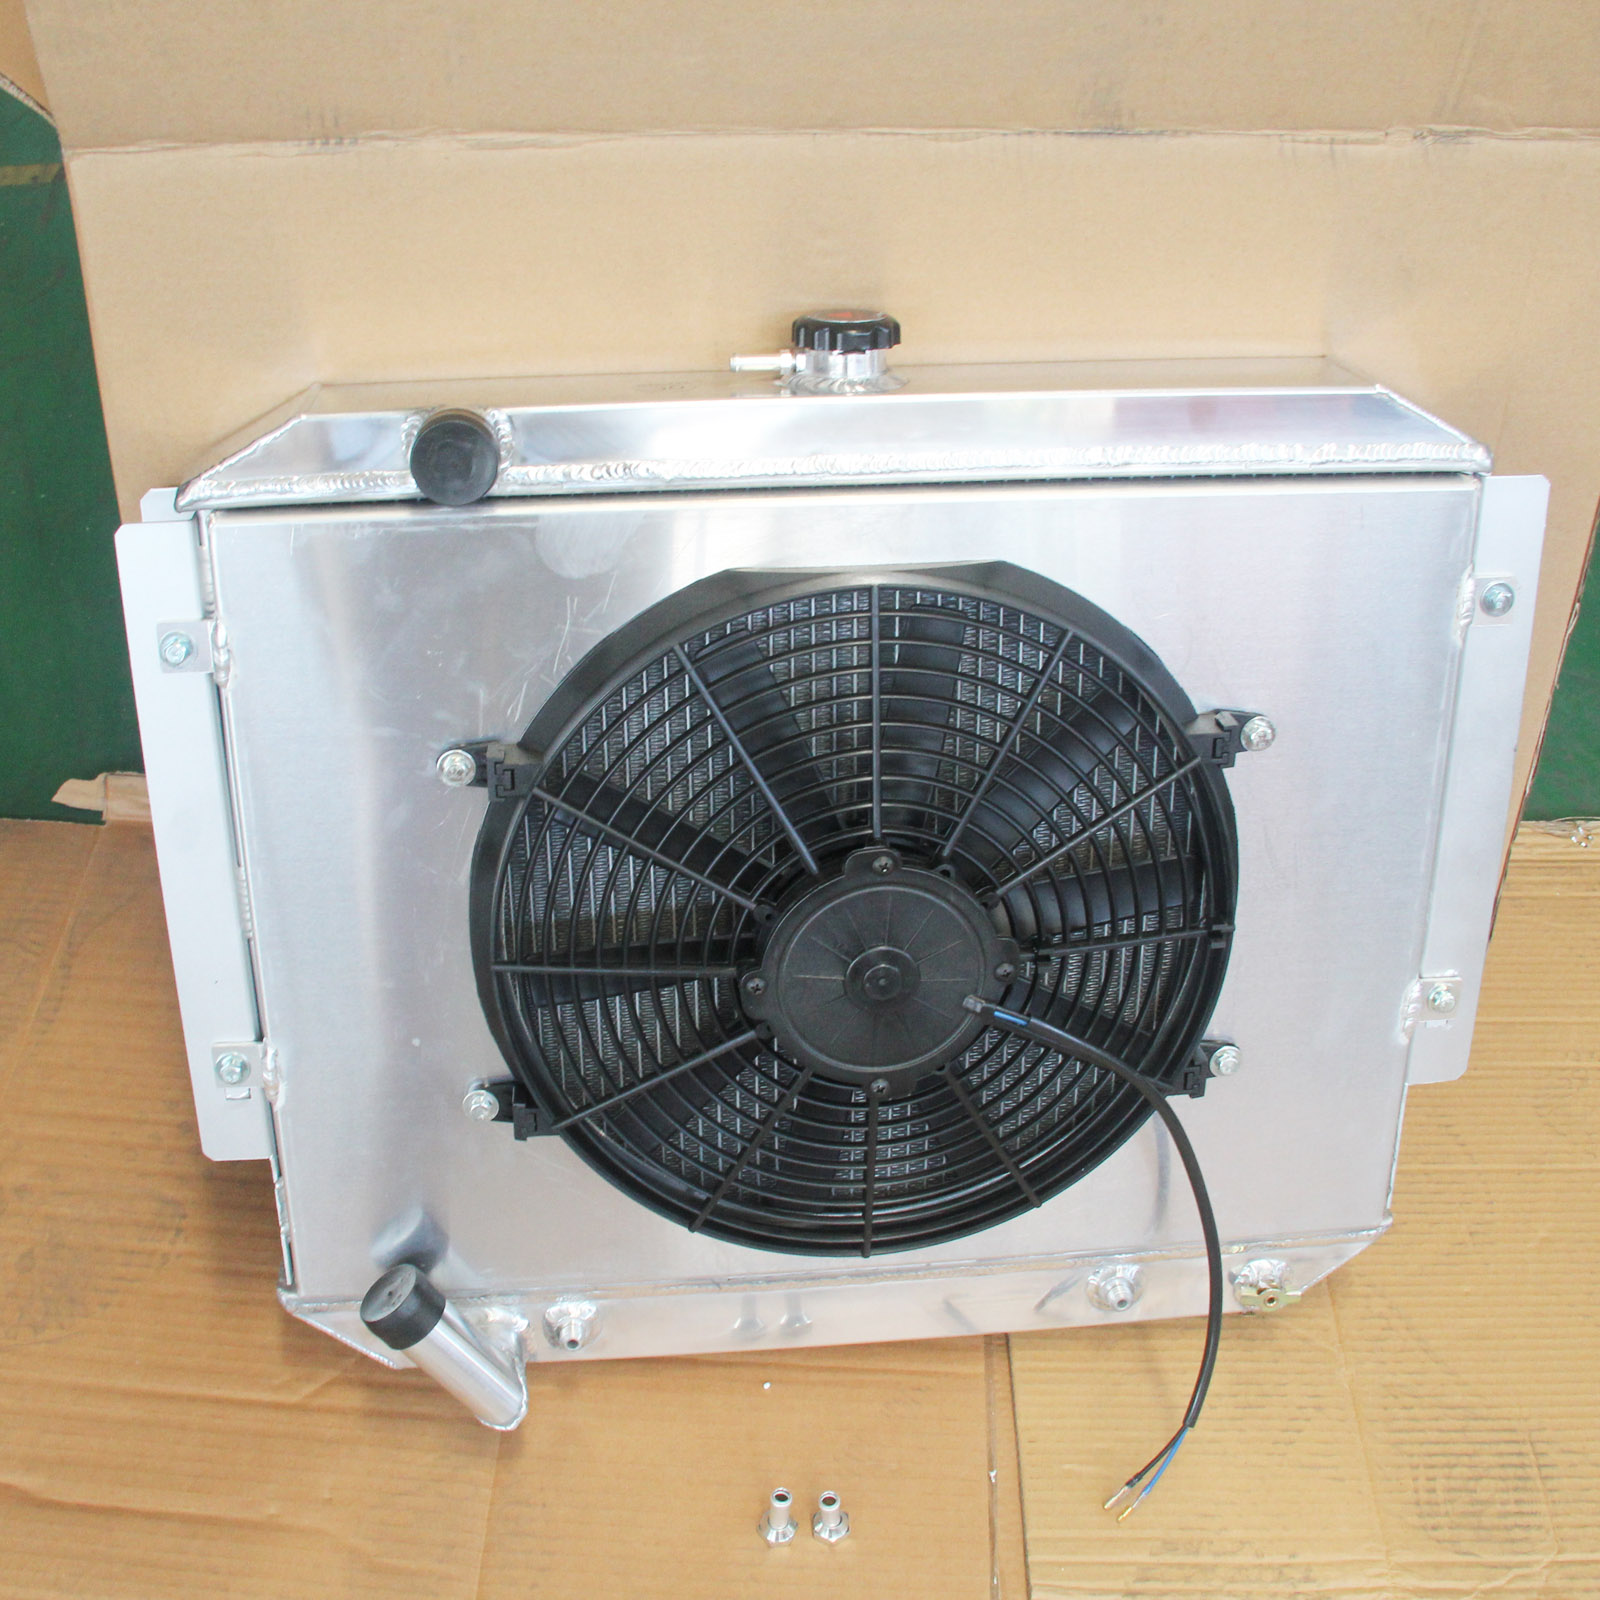 Aluminum Radiator Fan Shroud For Mitsubishi Pajero Nh Nj Nk 30l Thermostat 3 0l V6 Petrol